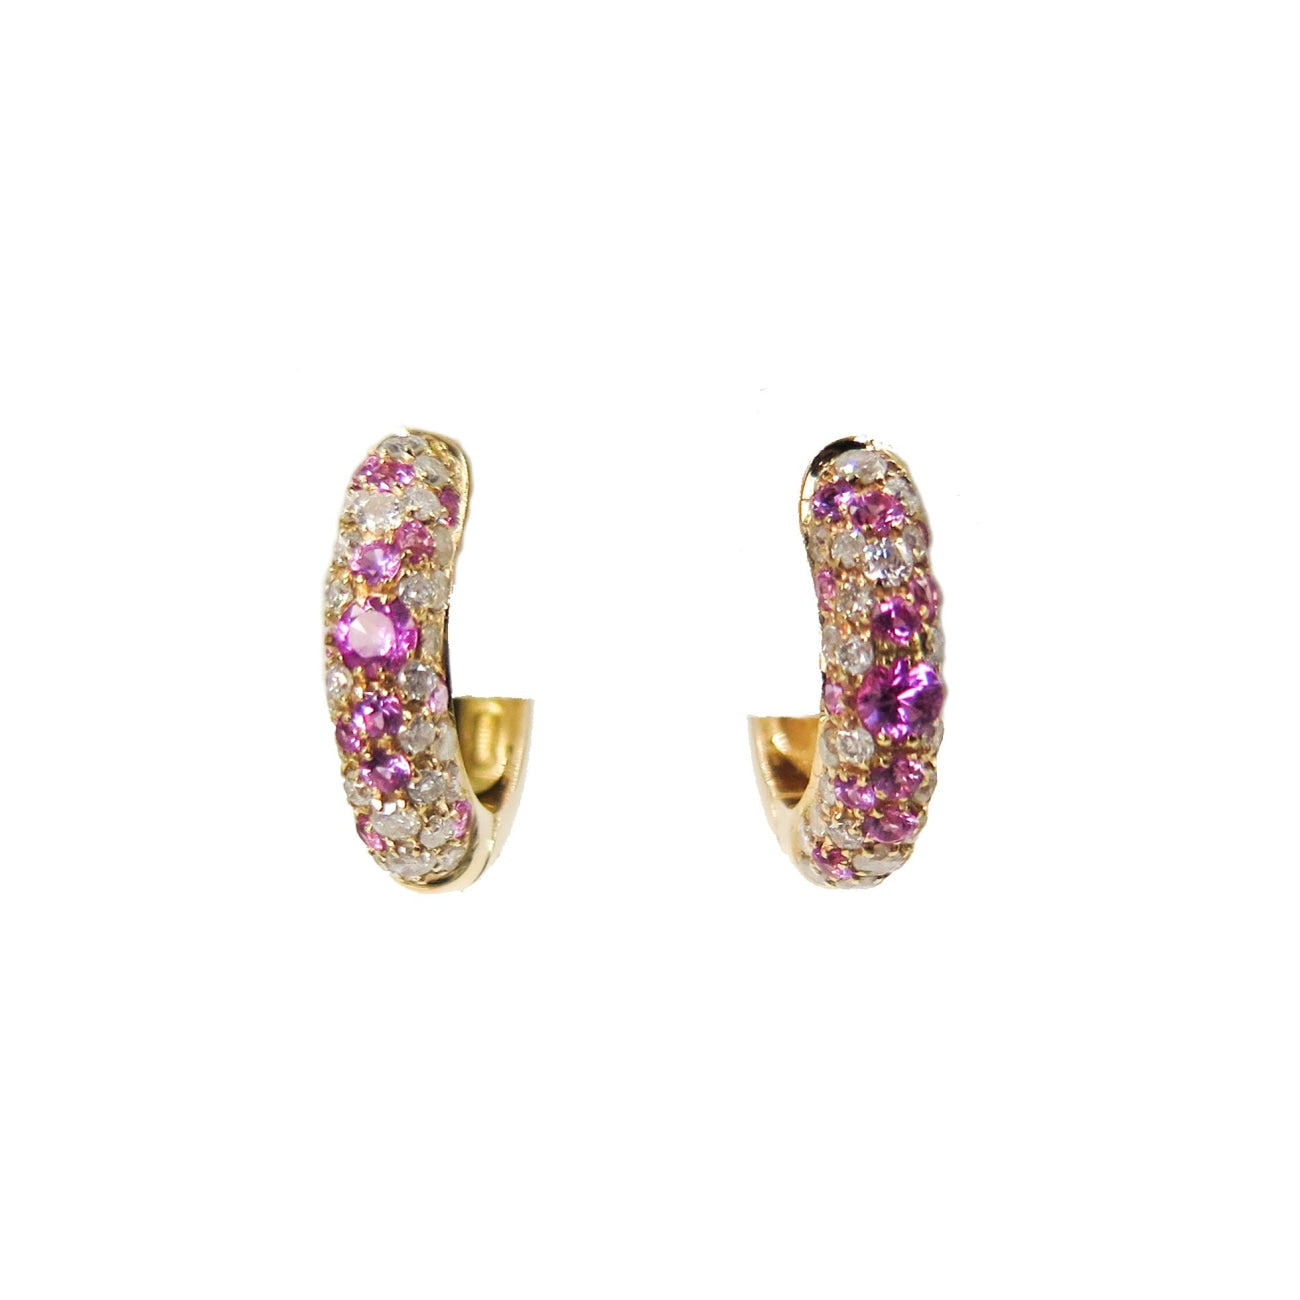 Estate Jewelry Estate Jewelry - Pink Sapphire and Diamond Rose Gold Huggie Earrings | Manfredi Jewels